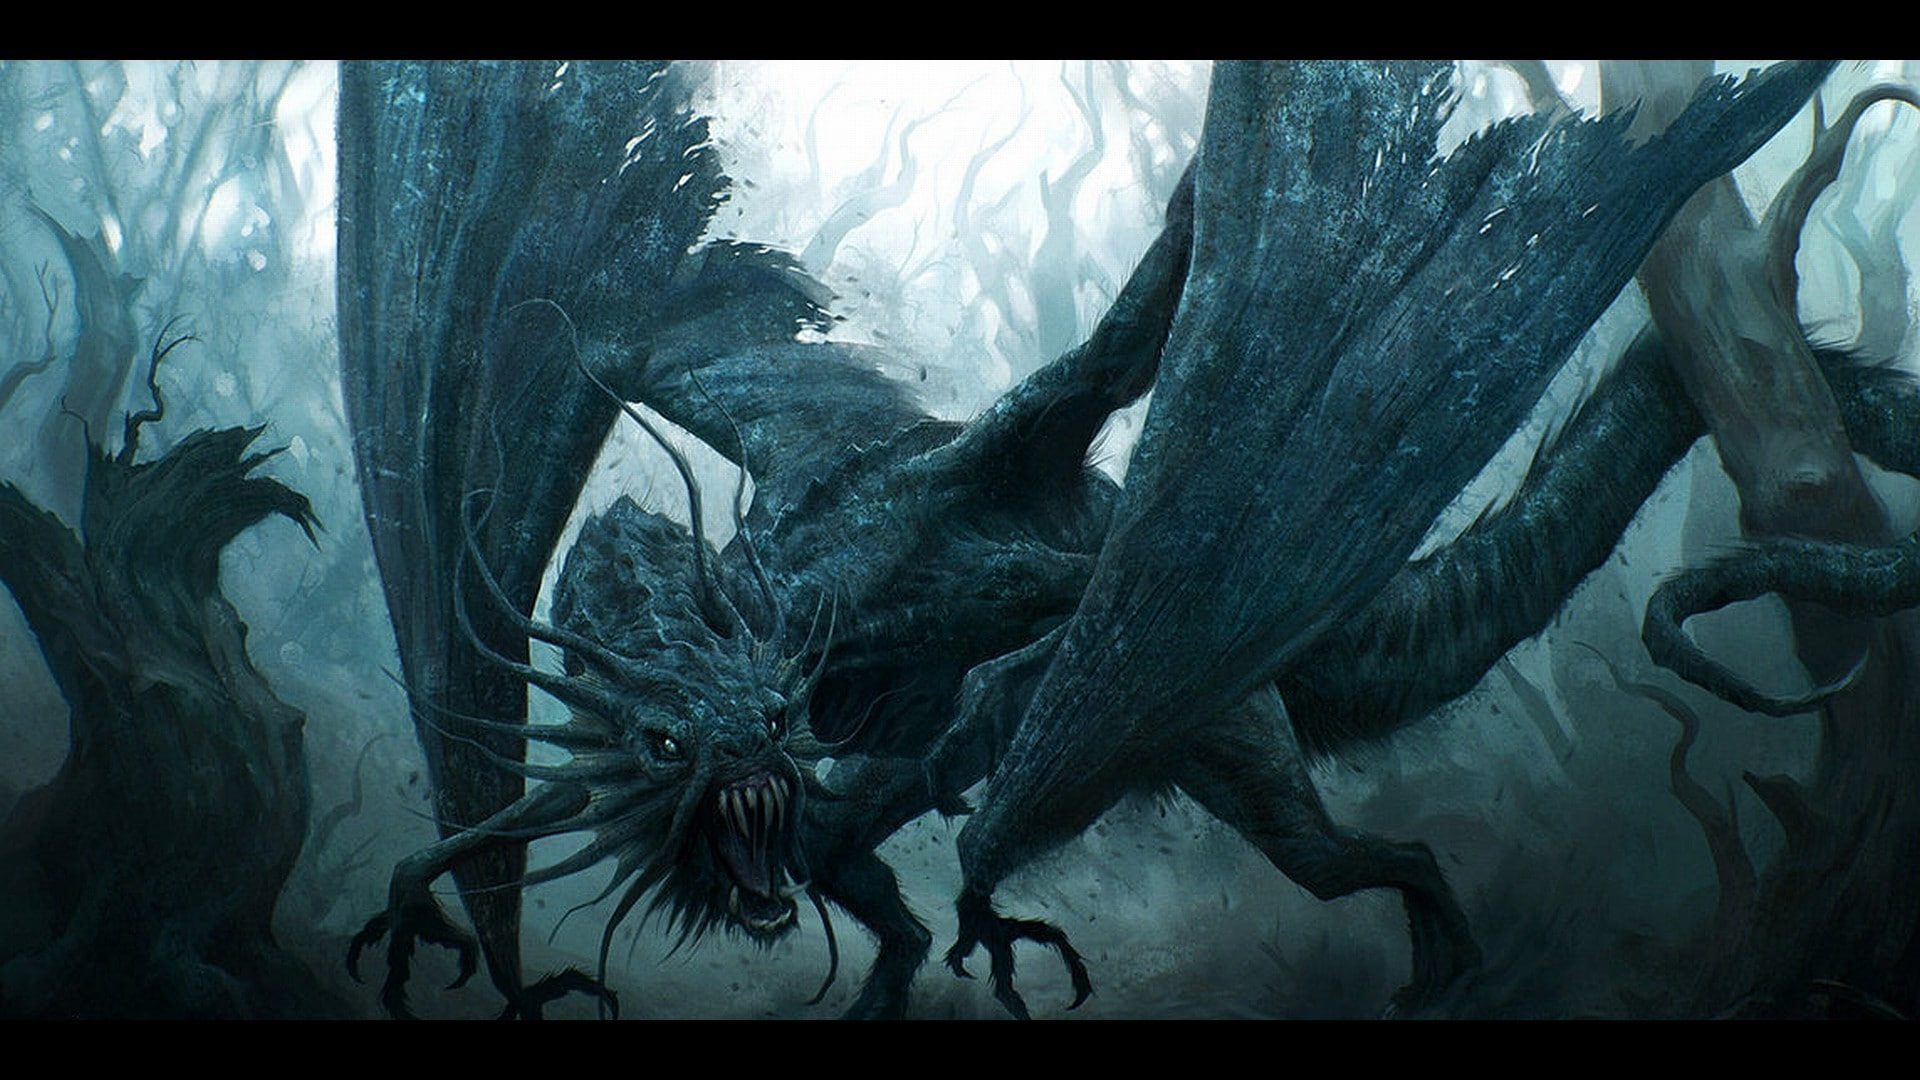 HD wallpaper digital art dragon fantasy Art Jabberwocky 1920x1080